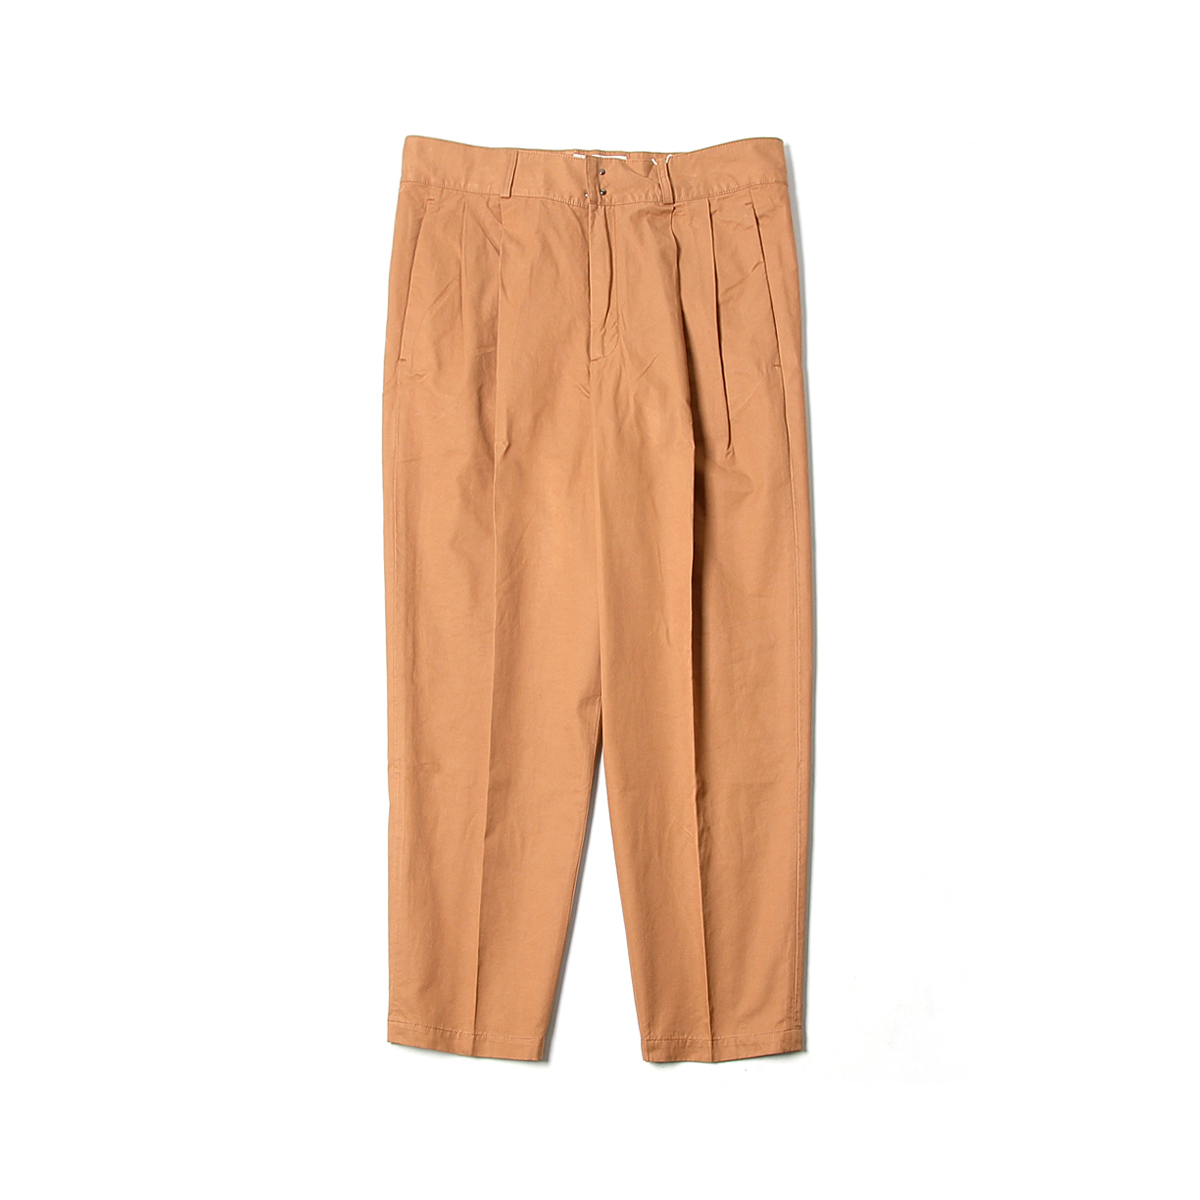 [BEHEAVYER] BHR TWO PLEATED CROP PANTS 'BROWN'